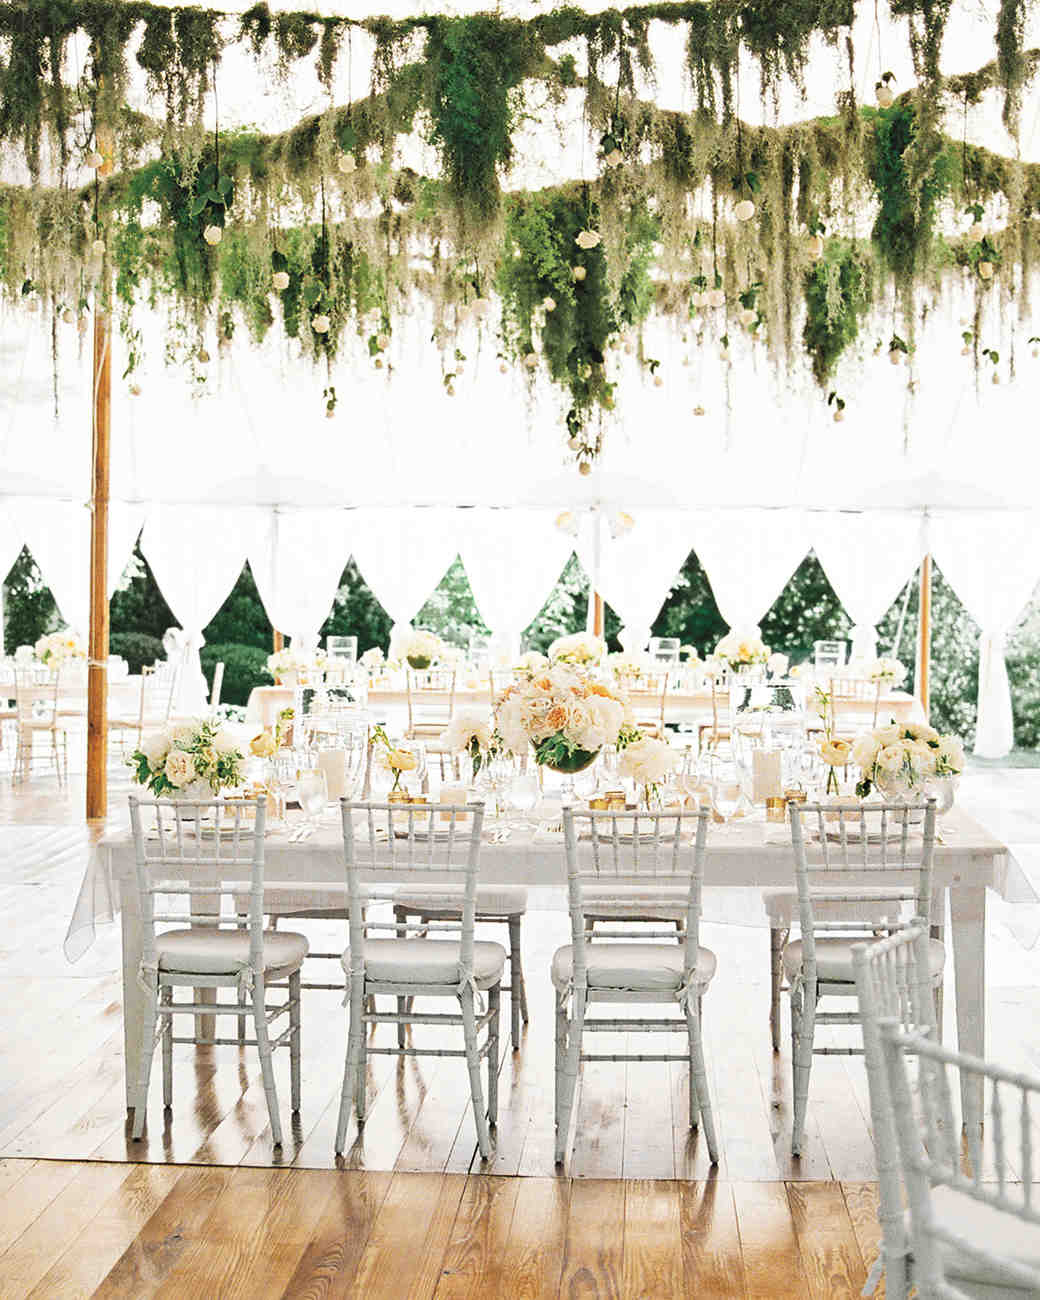 Small Wedding Reception Ideas: 33 Tent Decorating Ideas To Upgrade Your Wedding Reception